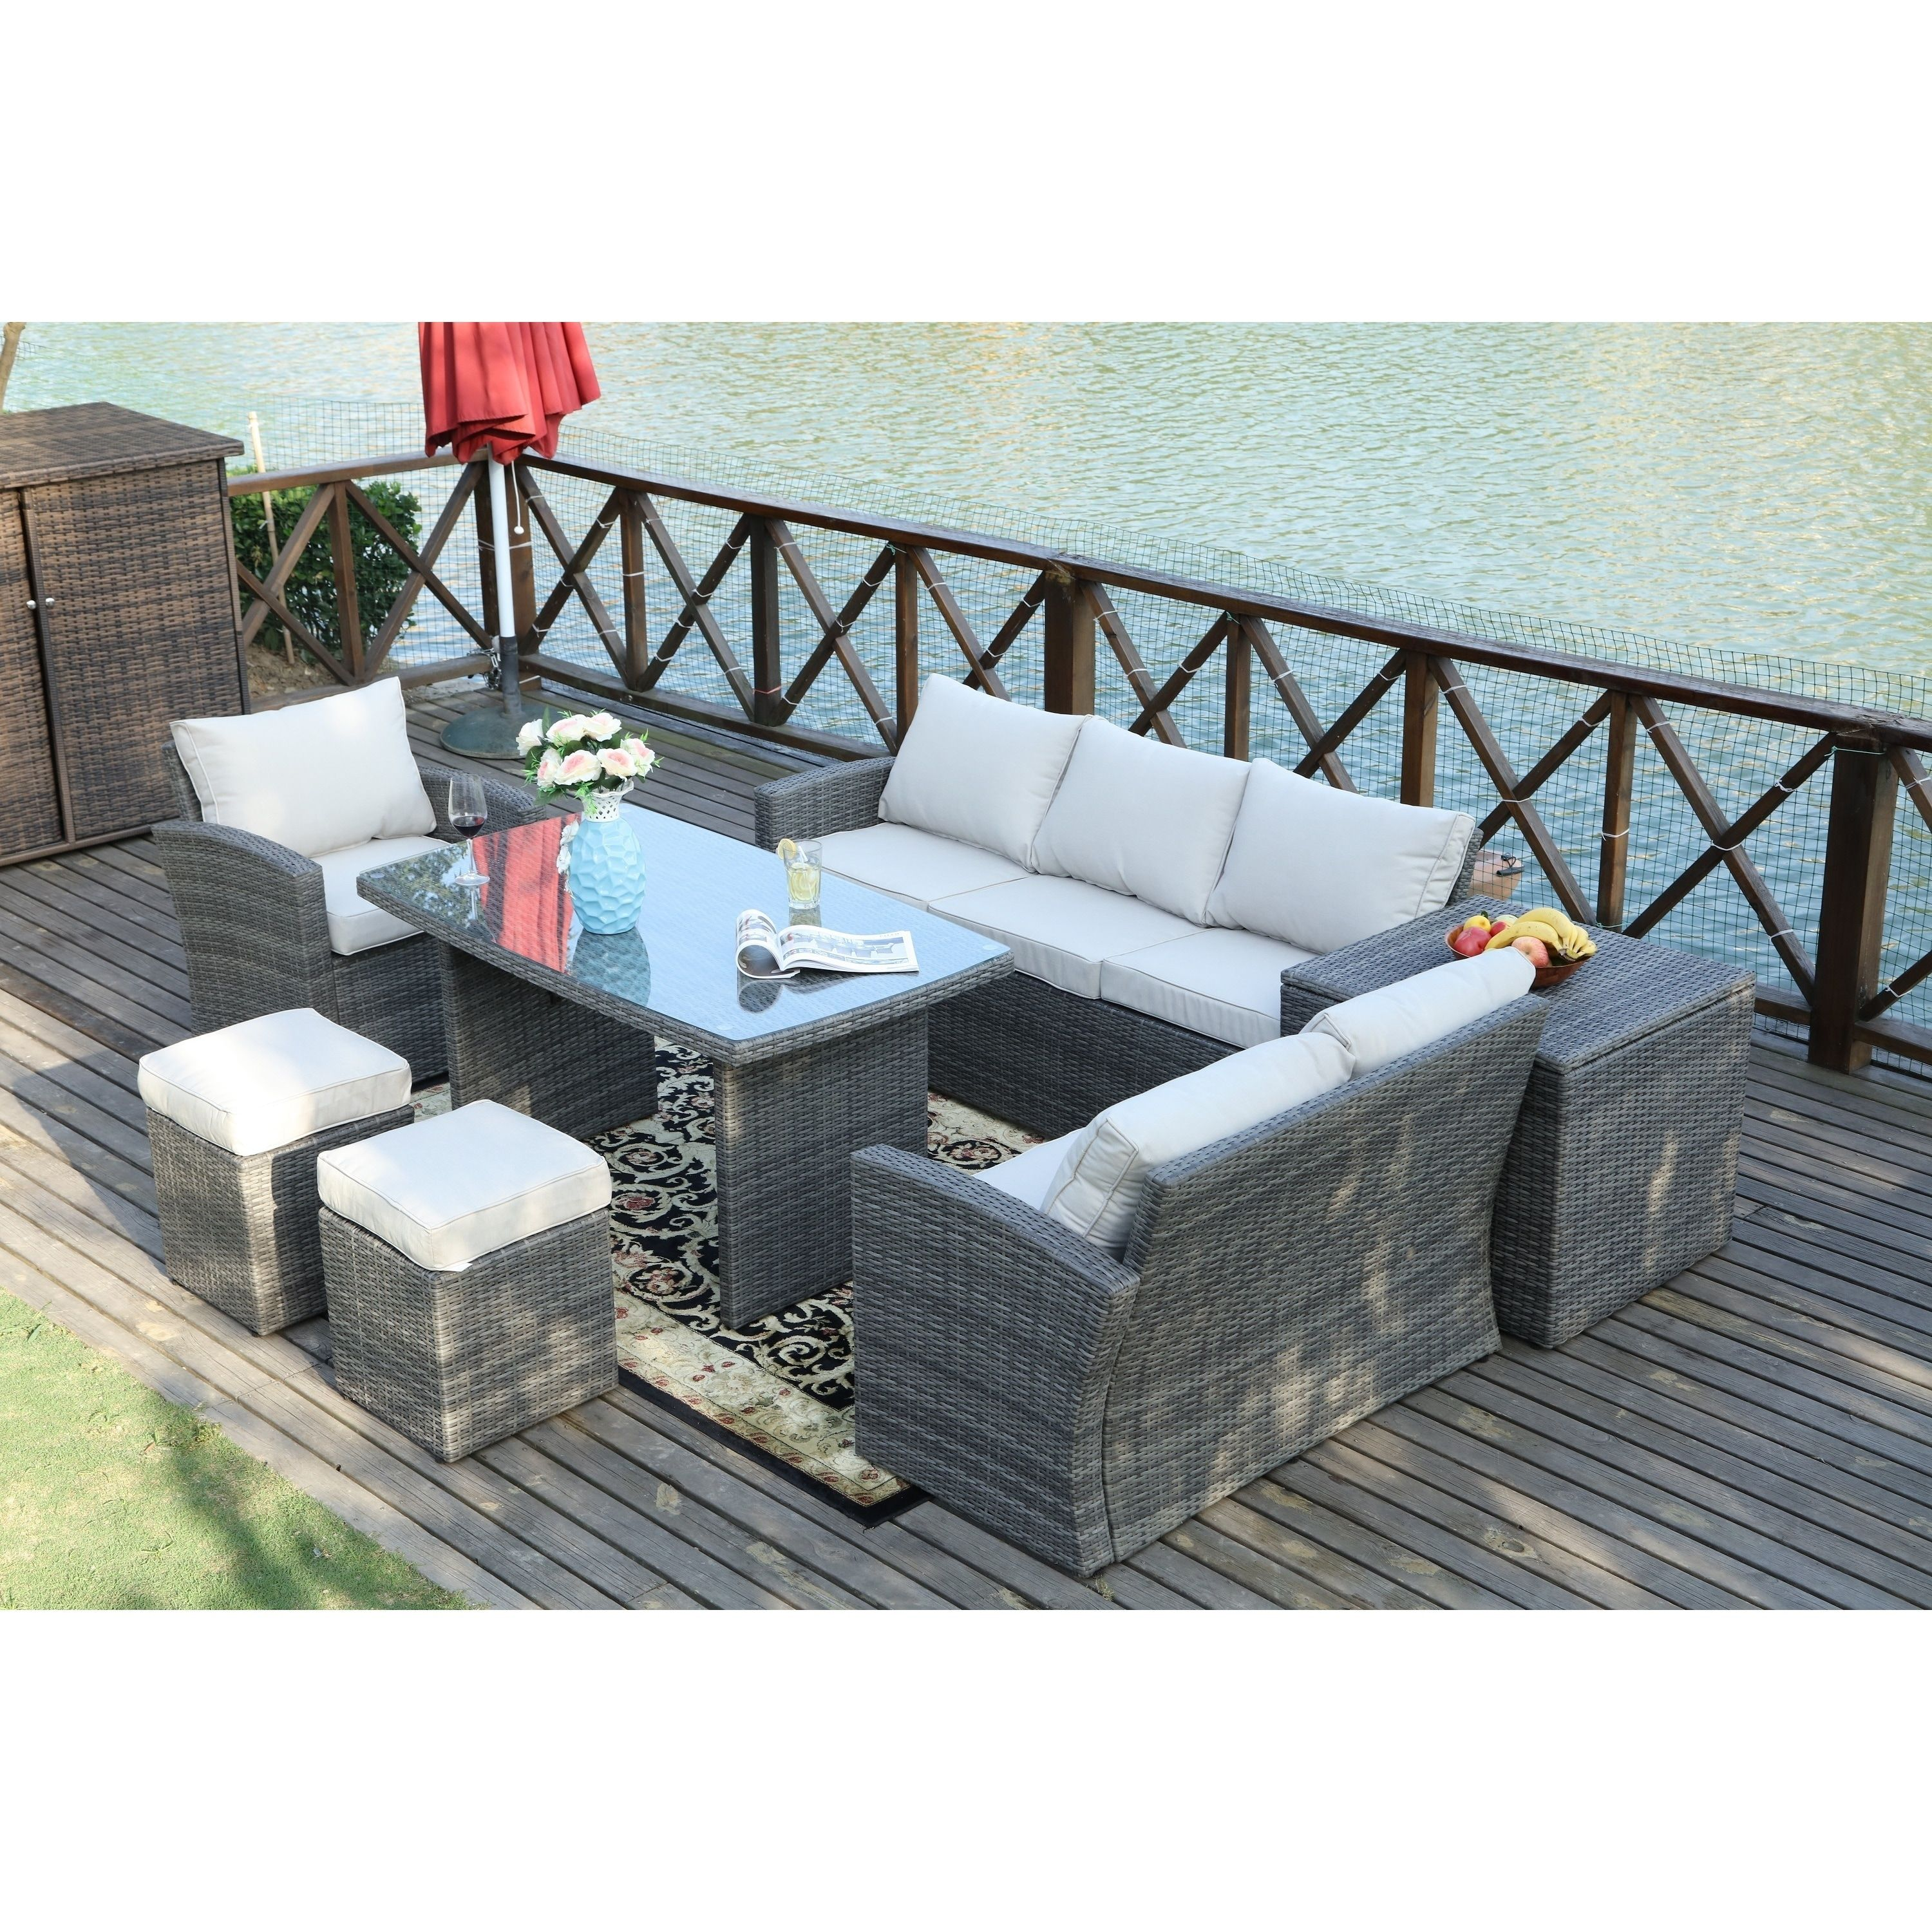 Direct wicker cannes outdoor 7 piece patio furniture set with side storage box grey rattan with beige cushion size 7 piece sets aluminum